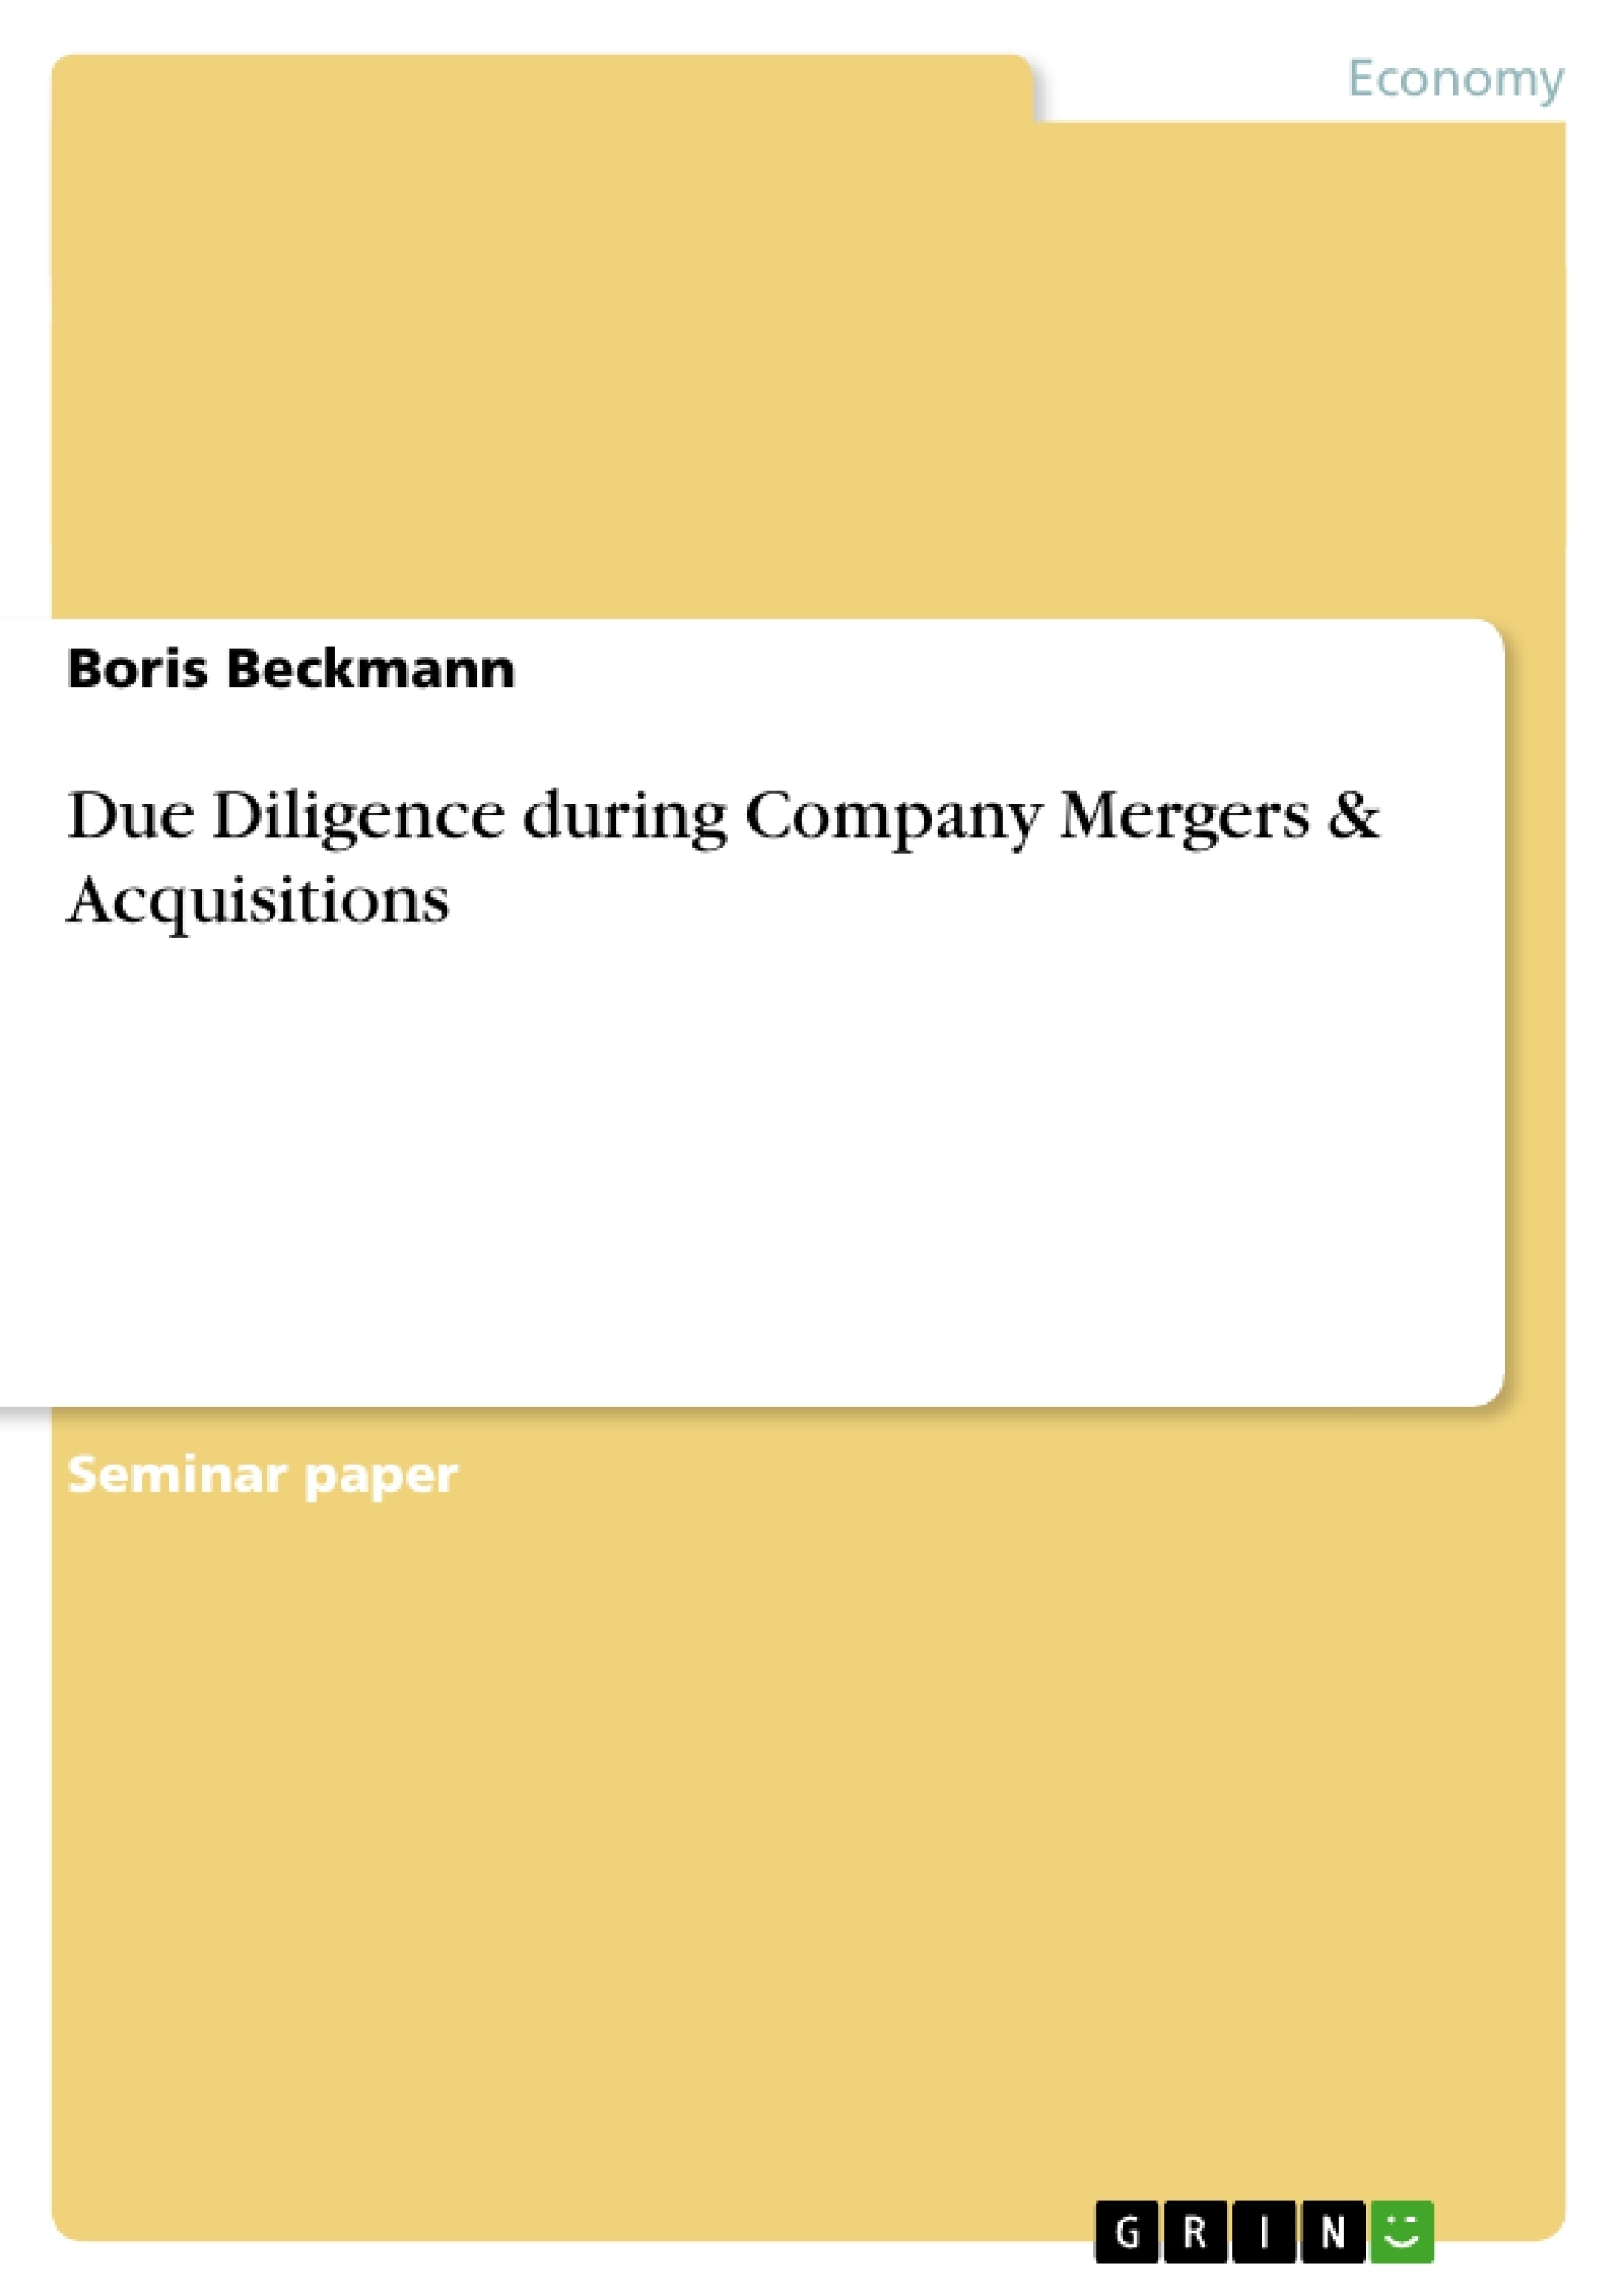 Title: Due Diligence during Company Mergers & Acquisitions